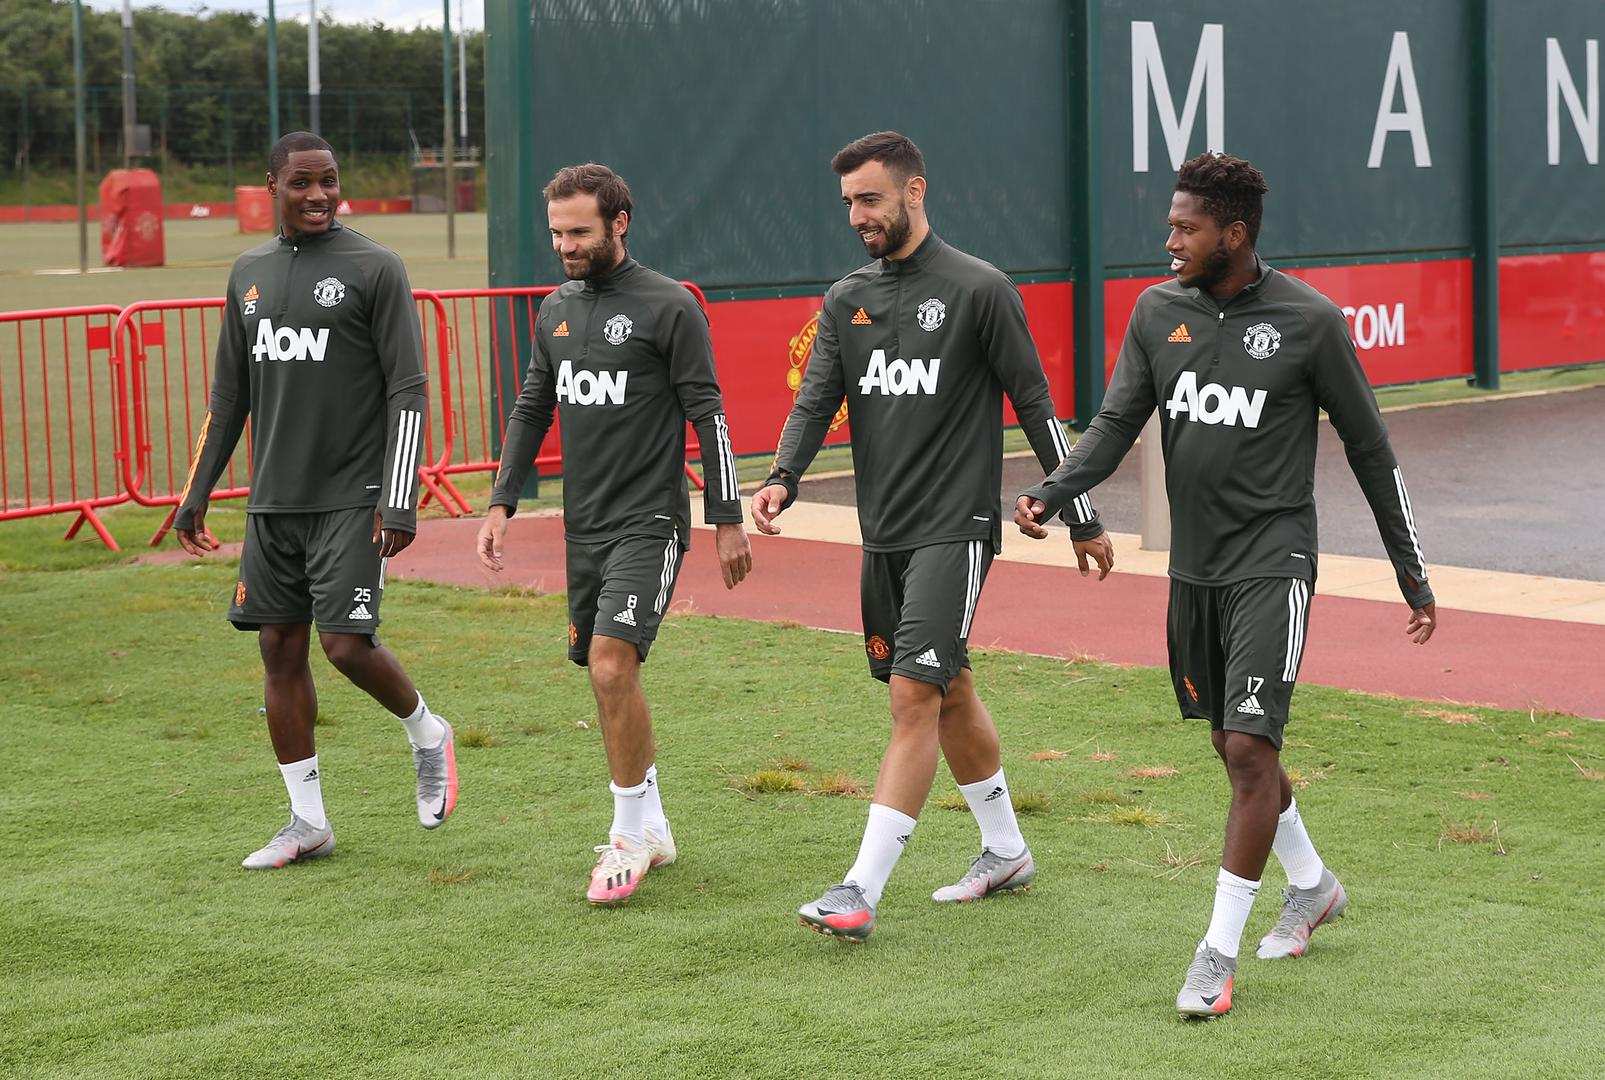 Odion Ighalo, Juan Mata, Bruno Fernandes and Fred walk out for a training session on Monday 3 August 2020